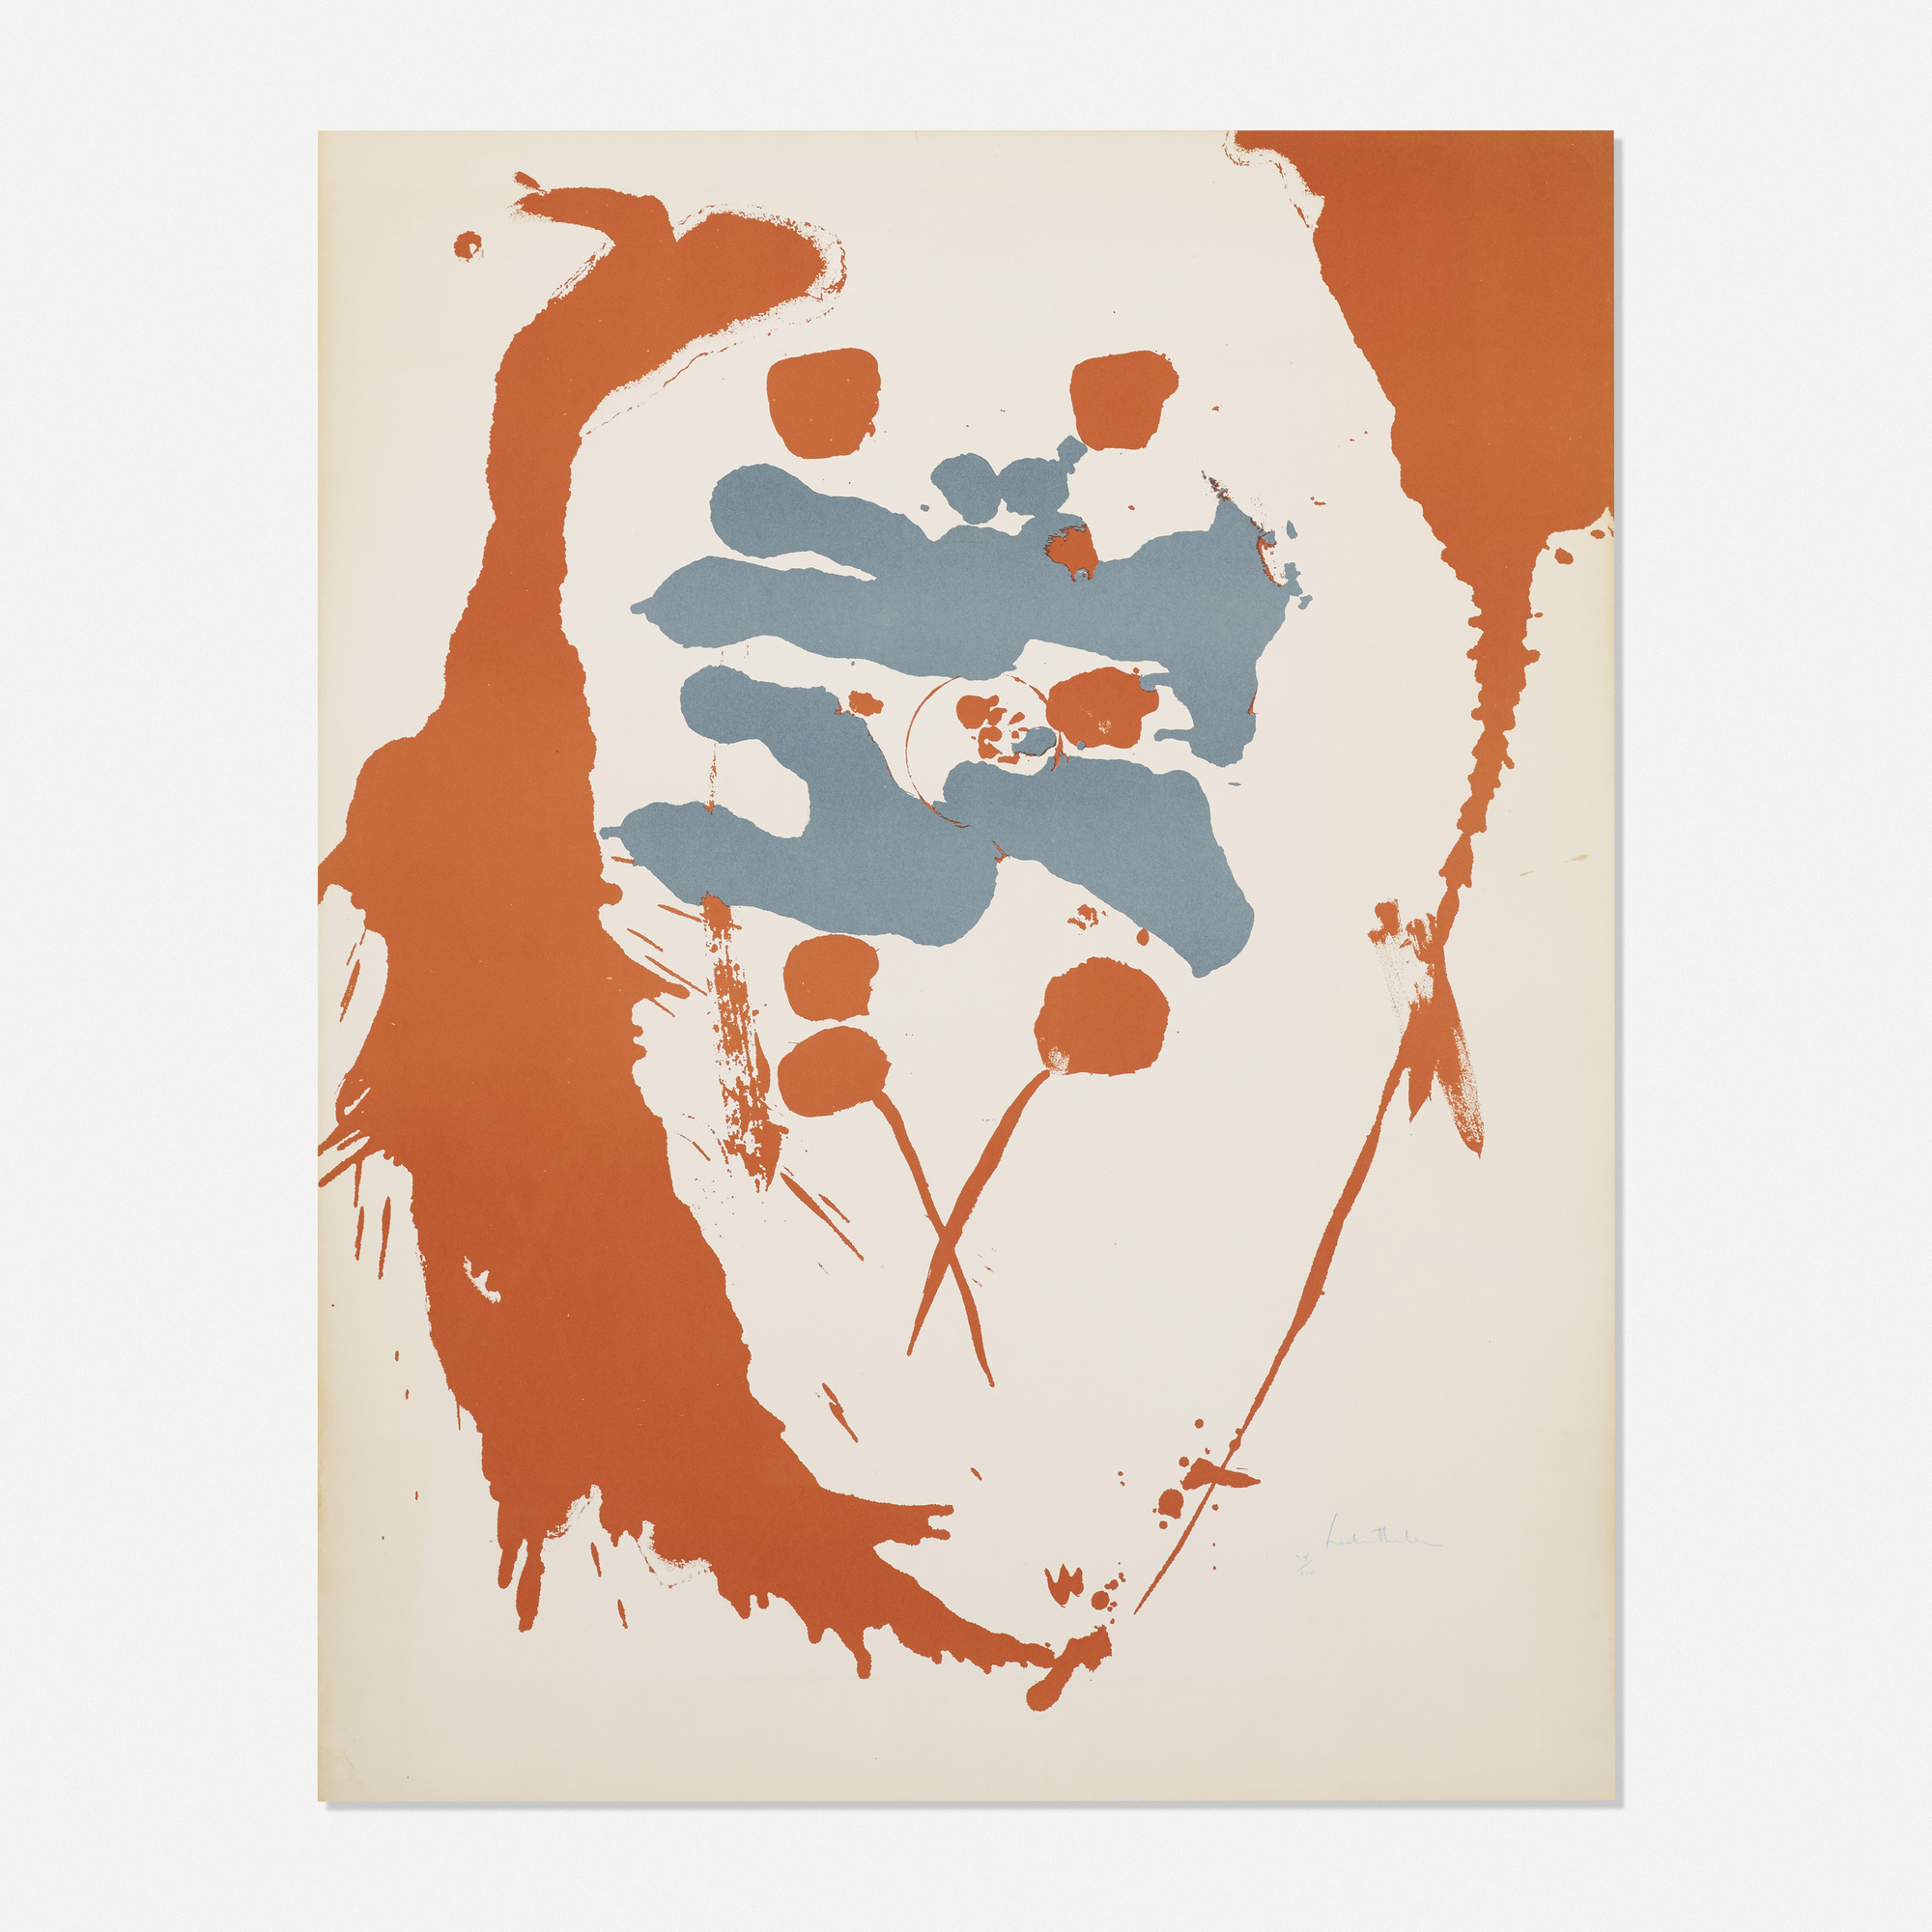 170: Helen Frankenthaler / Untitled (1 of 1)